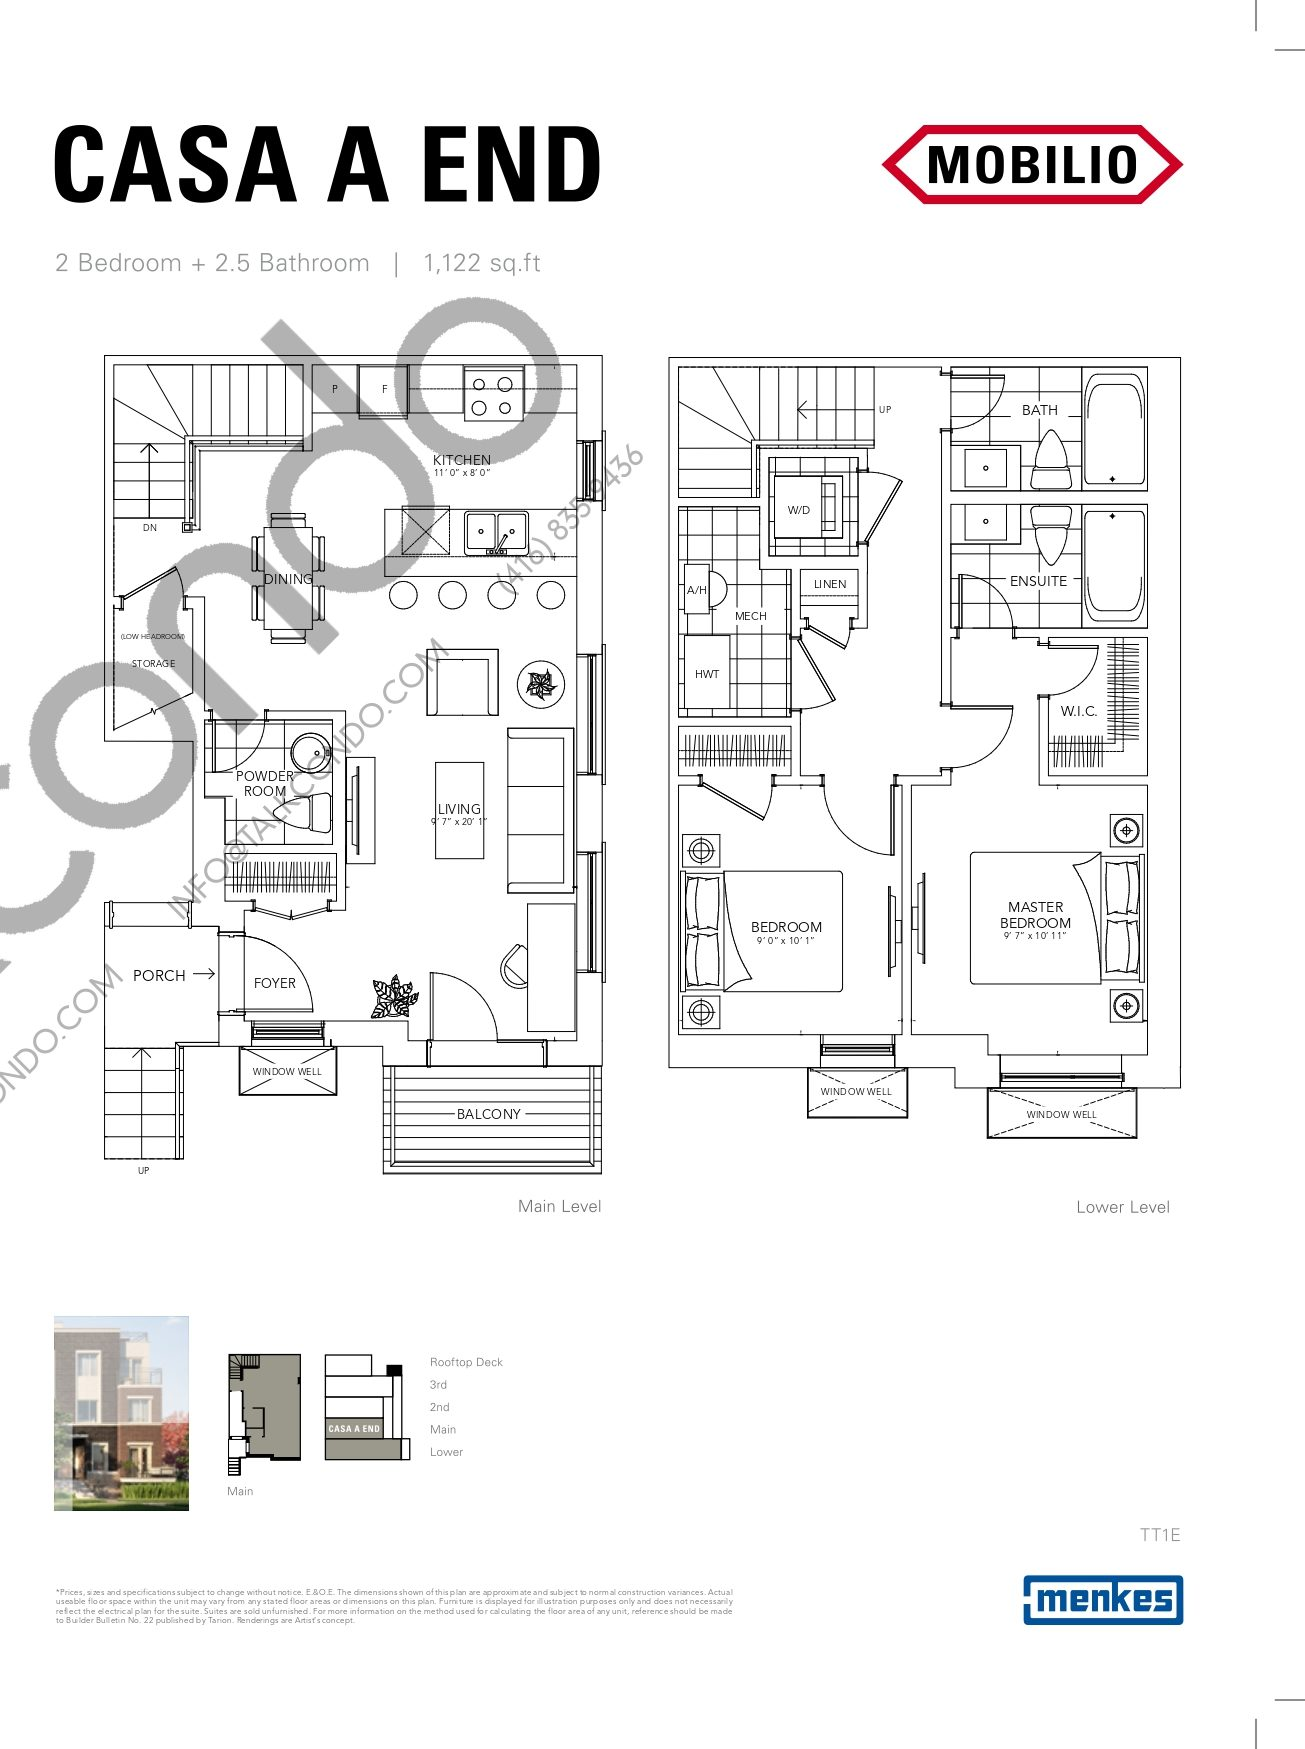 Casa A End - Deluxe Collection Floor Plan at Mobilio Townhomes - 1122 sq.ft